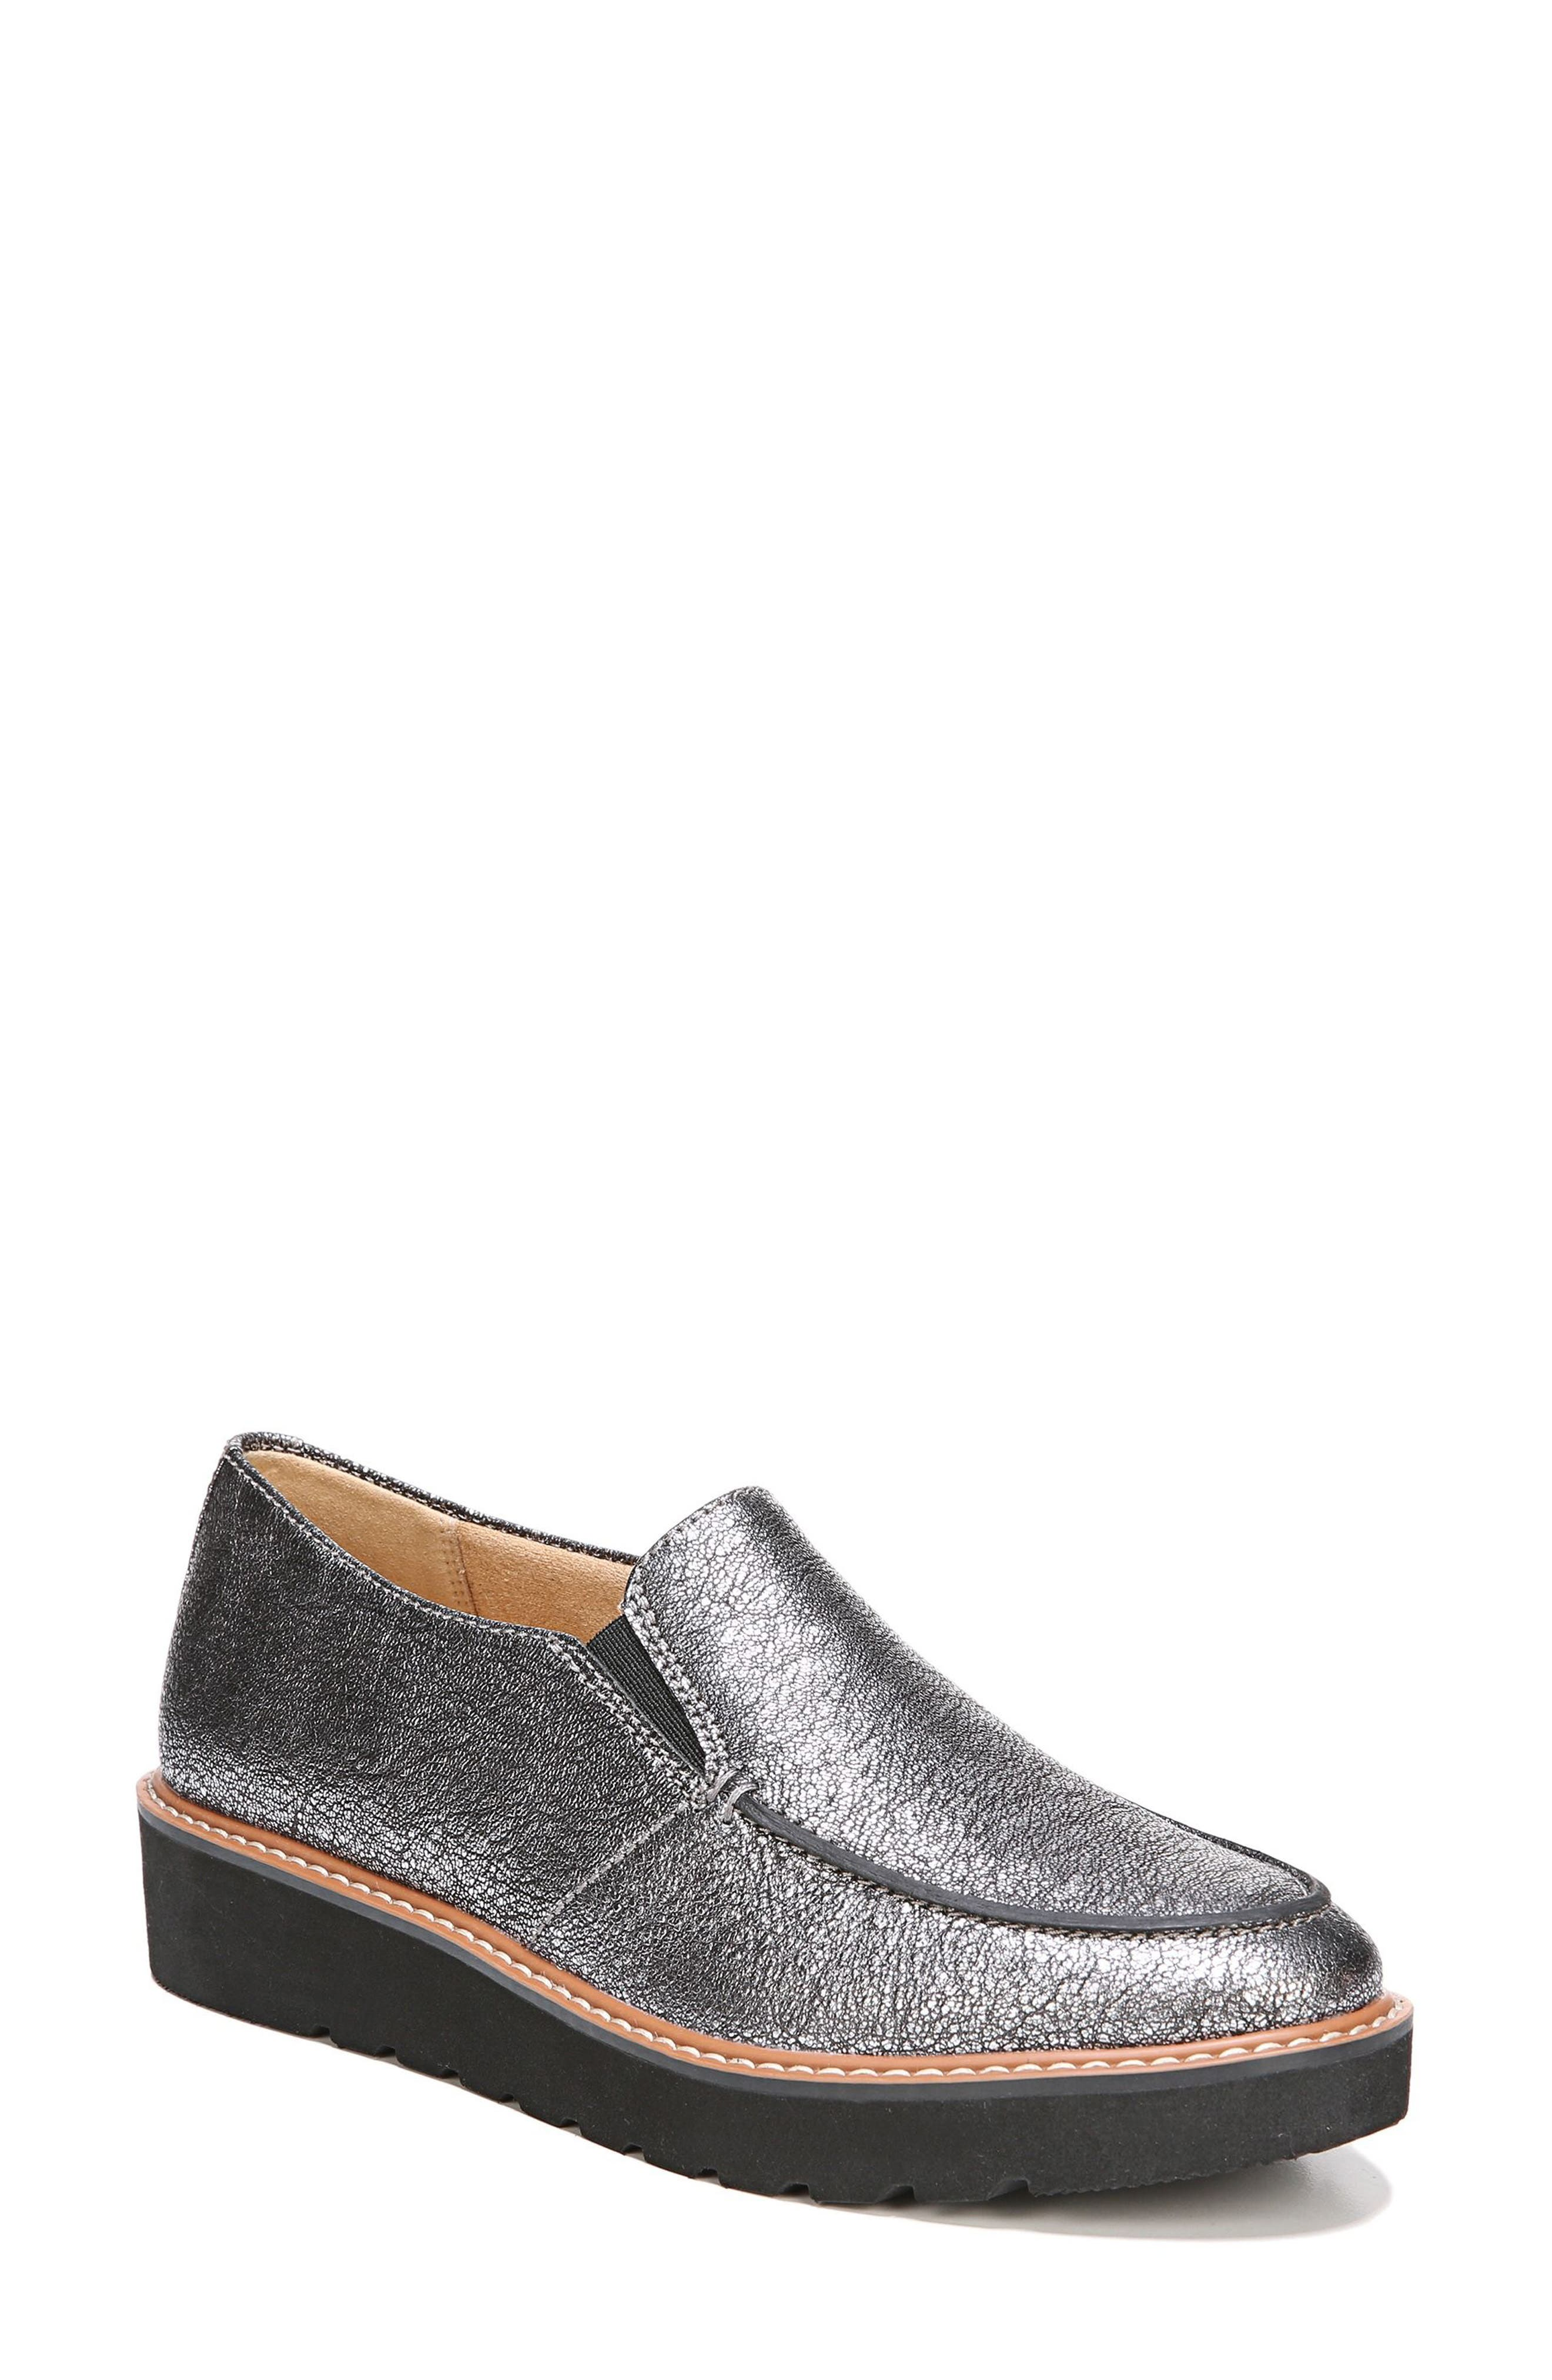 Aibileen Loafer,                         Main,                         color, Silver Leather